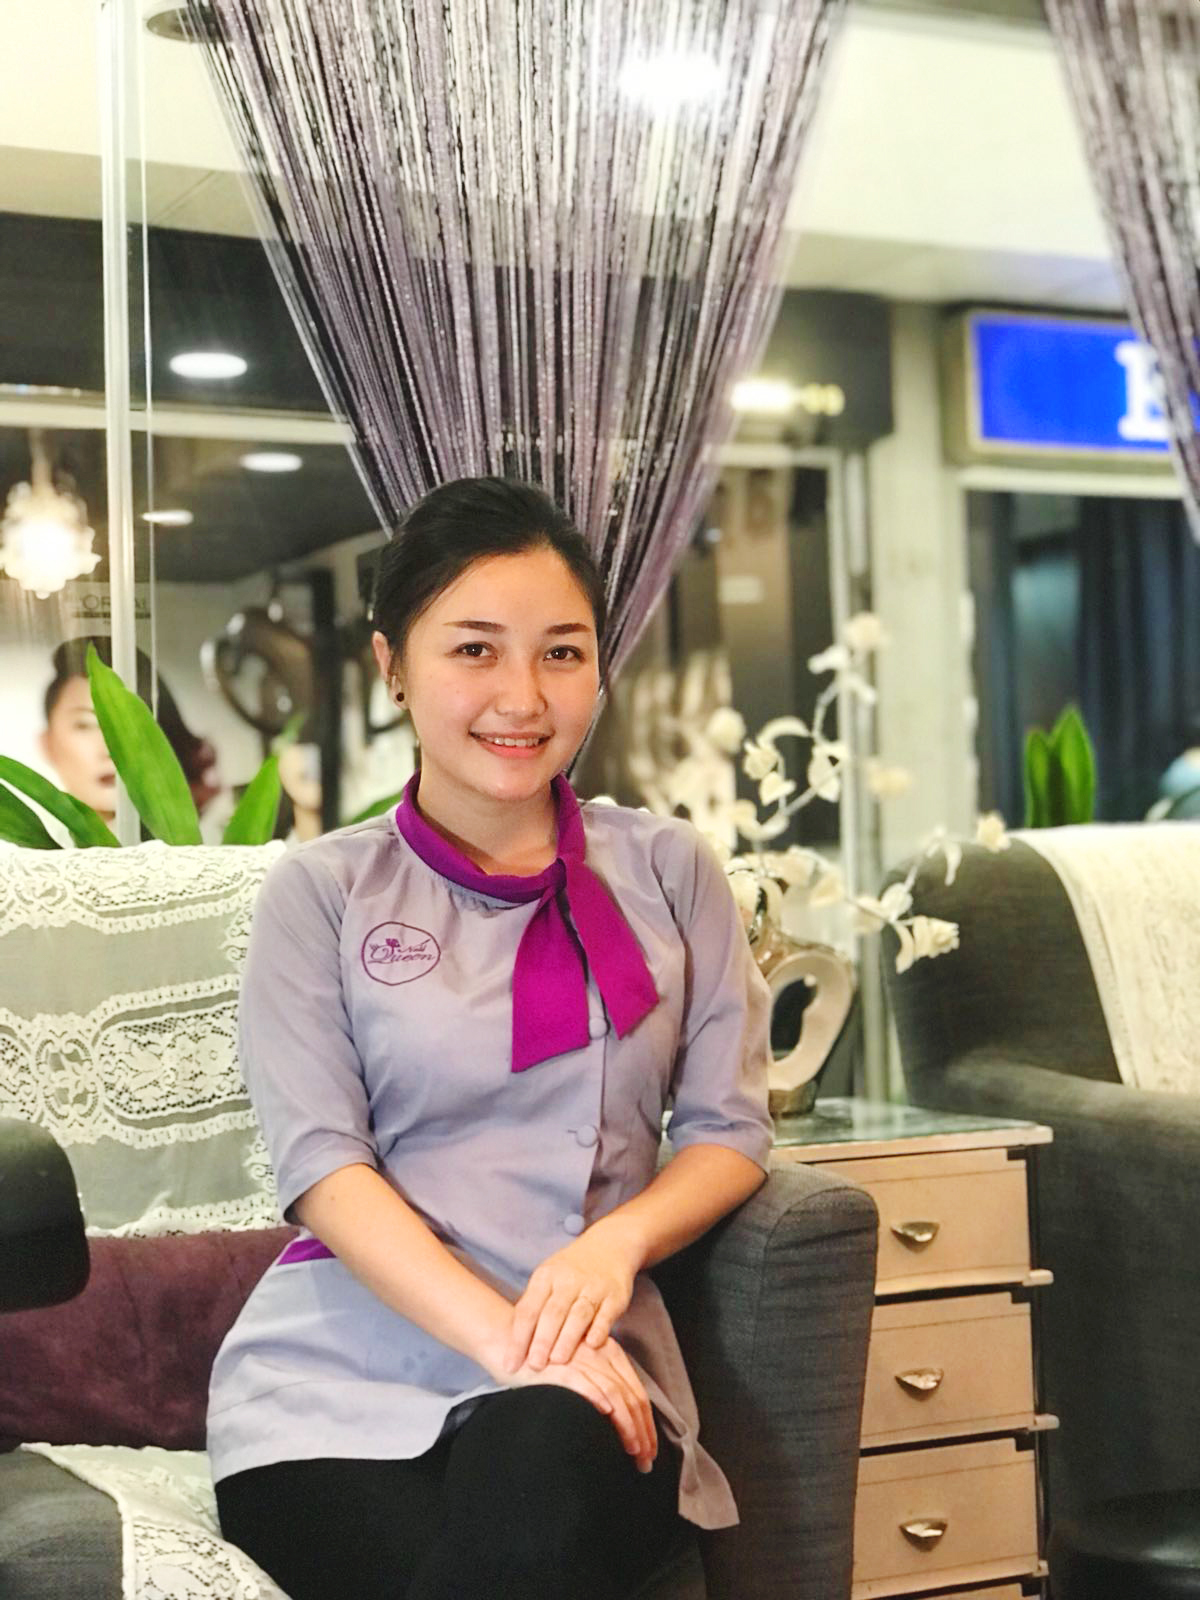 Bee - Bee is also a new member of the Nail Queen Family since June 2018. She is gentle and quick with her tools, making sure that she provides a thorough cleansing and a squeaky clean set of nails.Bee speaks Vietnamese and Mandarin.